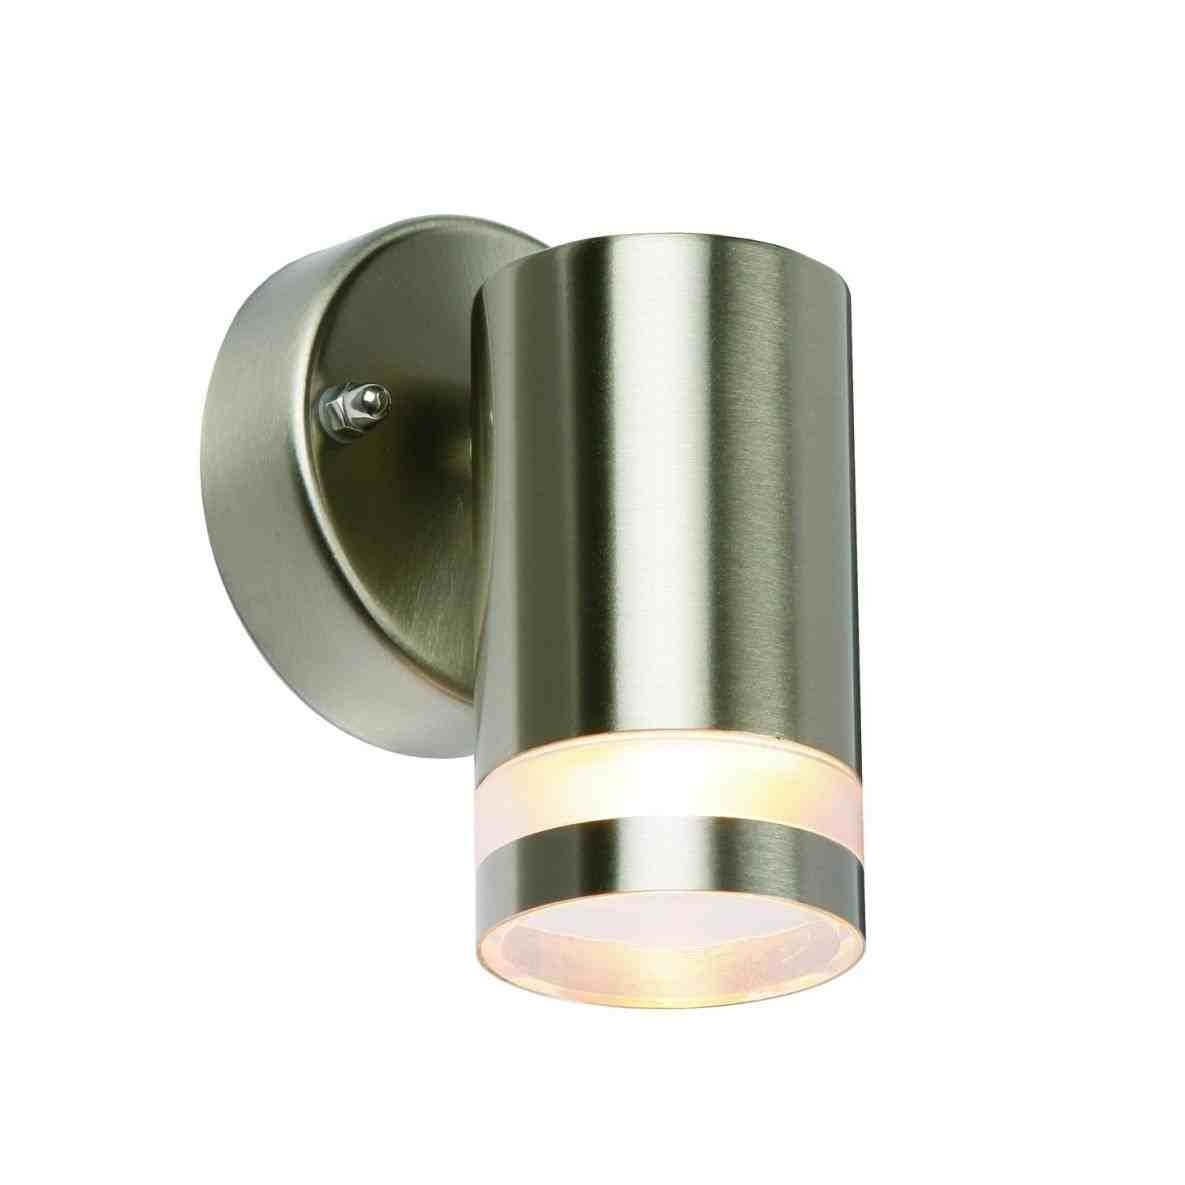 15 Photo Of Led Outdoor Wall Lights With Photocell